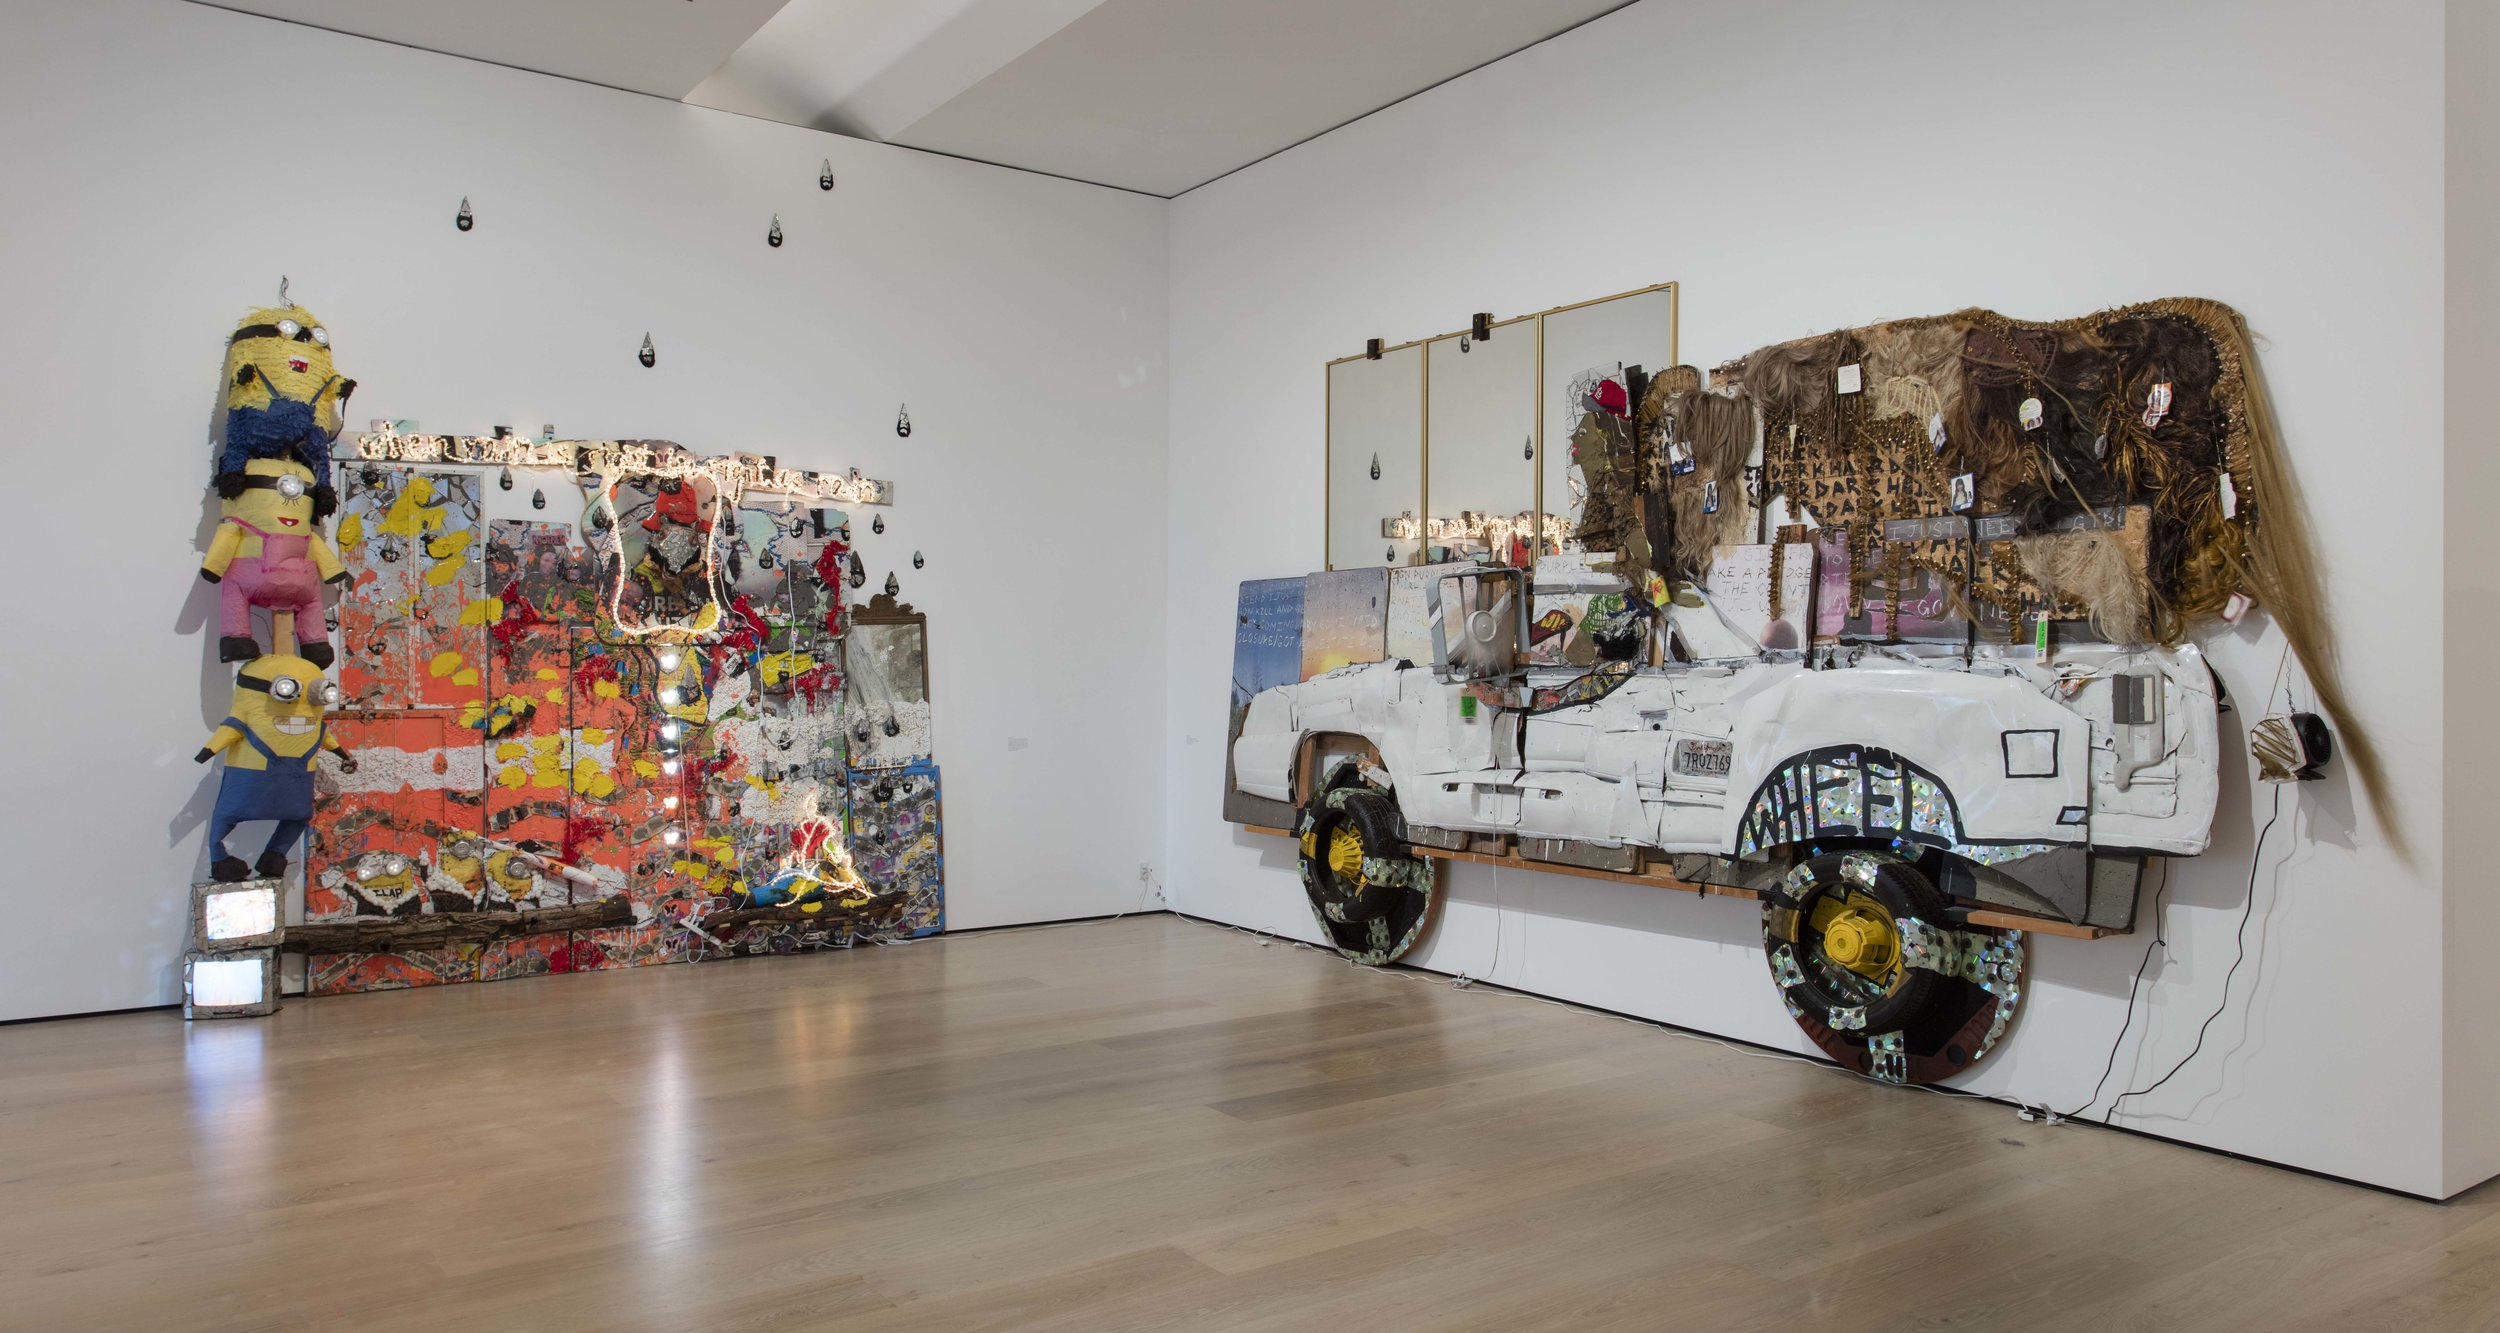 Aaron Fowler, Installation view, Made in L.A. 2018, June 3-September 2, 2018, Hammer Museum, Los Angeles. Photo: Brian Forrest